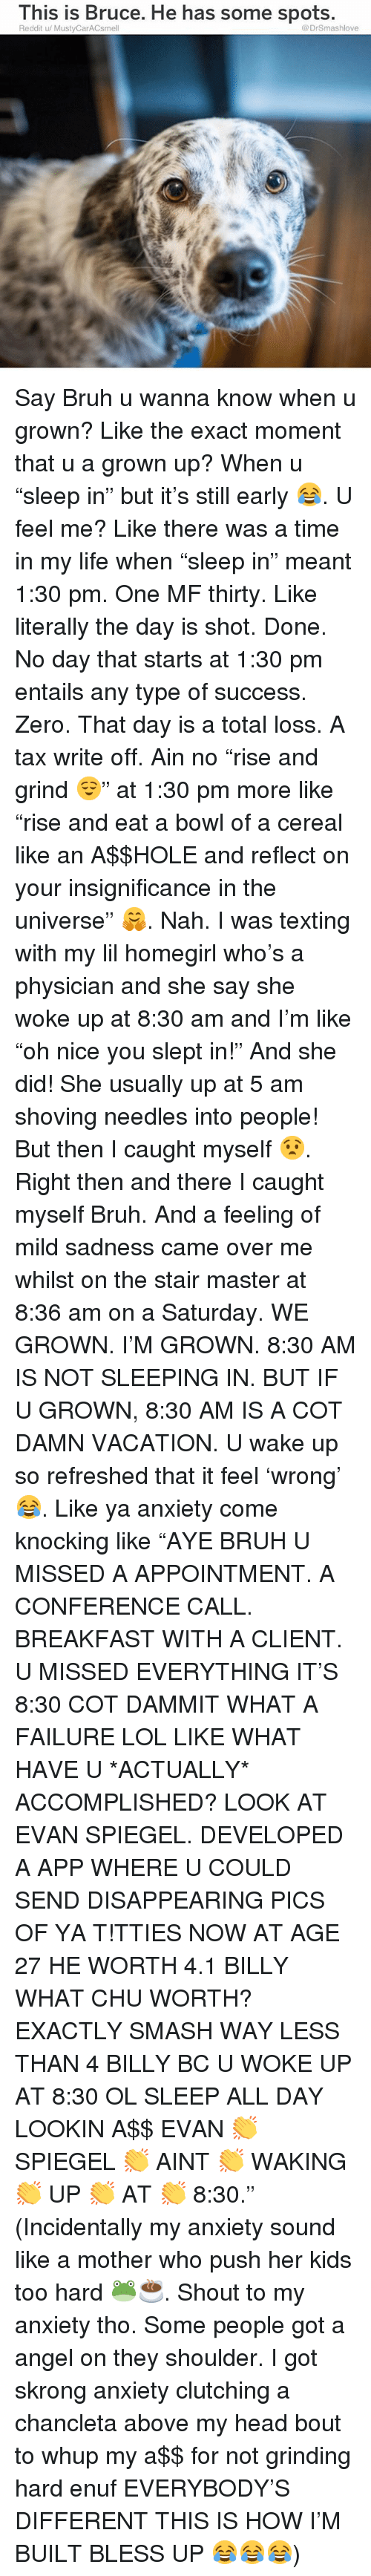 """5 Am, Bless Up, and Bruh: This is Bruce. He has some spots.  Reddit u/ MustyCarACsmell  @DrSmashlove Say Bruh u wanna know when u grown? Like the exact moment that u a grown up? When u """"sleep in"""" but it's still early 😂. U feel me? Like there was a time in my life when """"sleep in"""" meant 1:30 pm. One MF thirty. Like literally the day is shot. Done. No day that starts at 1:30 pm entails any type of success. Zero. That day is a total loss. A tax write off. Ain no """"rise and grind 😌"""" at 1:30 pm more like """"rise and eat a bowl of a cereal like an A$$HOLE and reflect on your insignificance in the universe"""" 🤗. Nah. I was texting with my lil homegirl who's a physician and she say she woke up at 8:30 am and I'm like """"oh nice you slept in!"""" And she did! She usually up at 5 am shoving needles into people! But then I caught myself 😧. Right then and there I caught myself Bruh. And a feeling of mild sadness came over me whilst on the stair master at 8:36 am on a Saturday. WE GROWN. I'M GROWN. 8:30 AM IS NOT SLEEPING IN. BUT IF U GROWN, 8:30 AM IS A COT DAMN VACATION. U wake up so refreshed that it feel 'wrong' 😂. Like ya anxiety come knocking like """"AYE BRUH U MISSED A APPOINTMENT. A CONFERENCE CALL. BREAKFAST WITH A CLIENT. U MISSED EVERYTHING IT'S 8:30 COT DAMMIT WHAT A FAILURE LOL LIKE WHAT HAVE U *ACTUALLY* ACCOMPLISHED? LOOK AT EVAN SPIEGEL. DEVELOPED A APP WHERE U COULD SEND DISAPPEARING PICS OF YA T!TTIES NOW AT AGE 27 HE WORTH 4.1 BILLY WHAT CHU WORTH? EXACTLY SMASH WAY LESS THAN 4 BILLY BC U WOKE UP AT 8:30 OL SLEEP ALL DAY LOOKIN A$$ EVAN 👏 SPIEGEL 👏 AINT 👏 WAKING 👏 UP 👏 AT 👏 8:30."""" (Incidentally my anxiety sound like a mother who push her kids too hard 🐸☕️. Shout to my anxiety tho. Some people got a angel on they shoulder. I got skrong anxiety clutching a chancleta above my head bout to whup my a$$ for not grinding hard enuf EVERYBODY'S DIFFERENT THIS IS HOW I'M BUILT BLESS UP 😂😂😂)"""